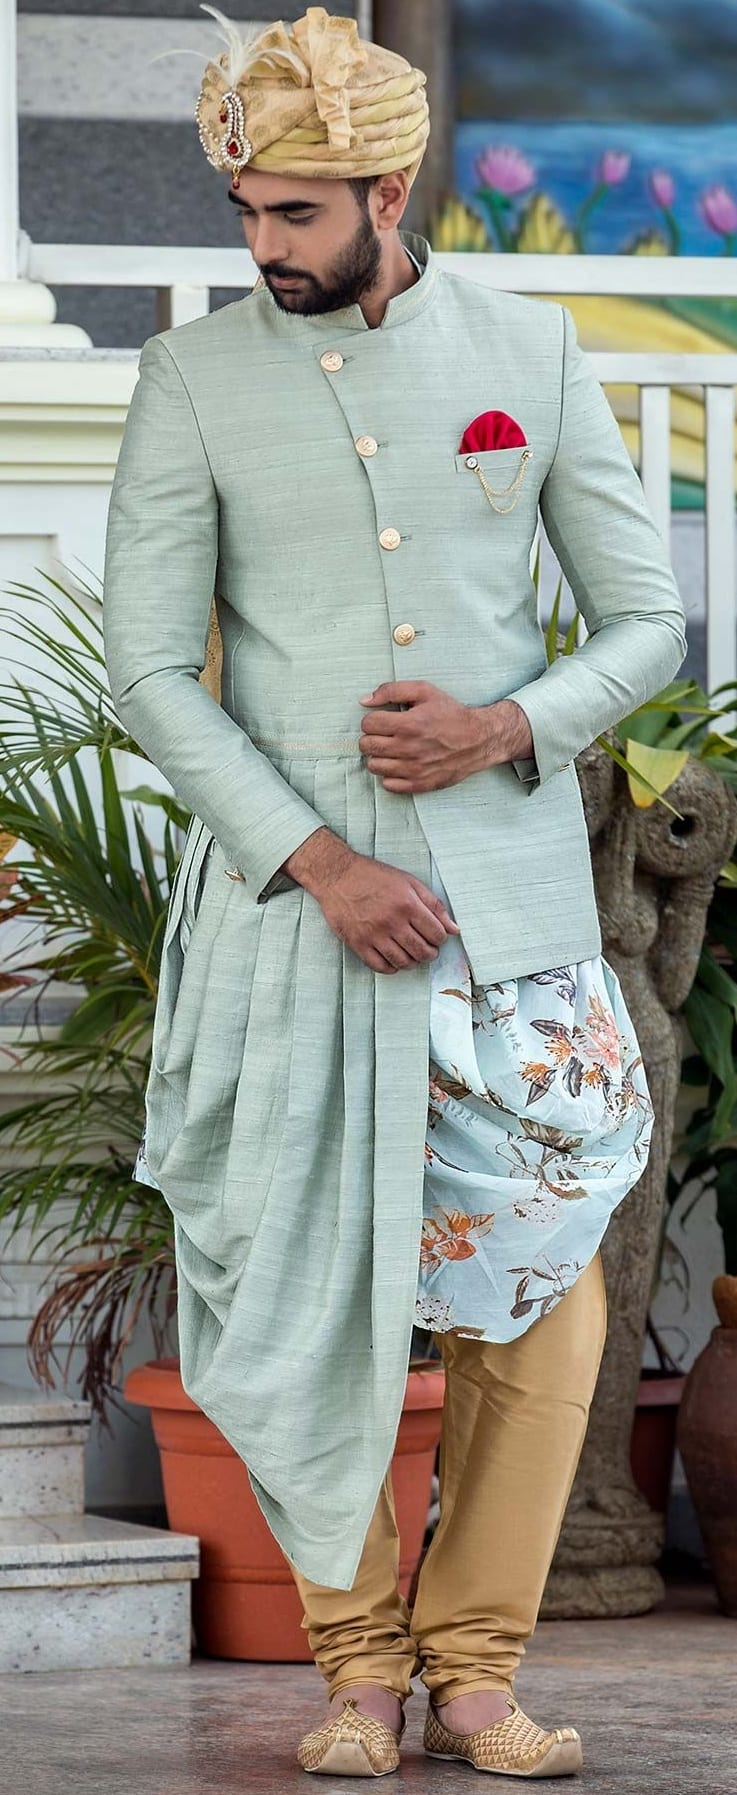 Trendy Wedding Outfit ideas for men